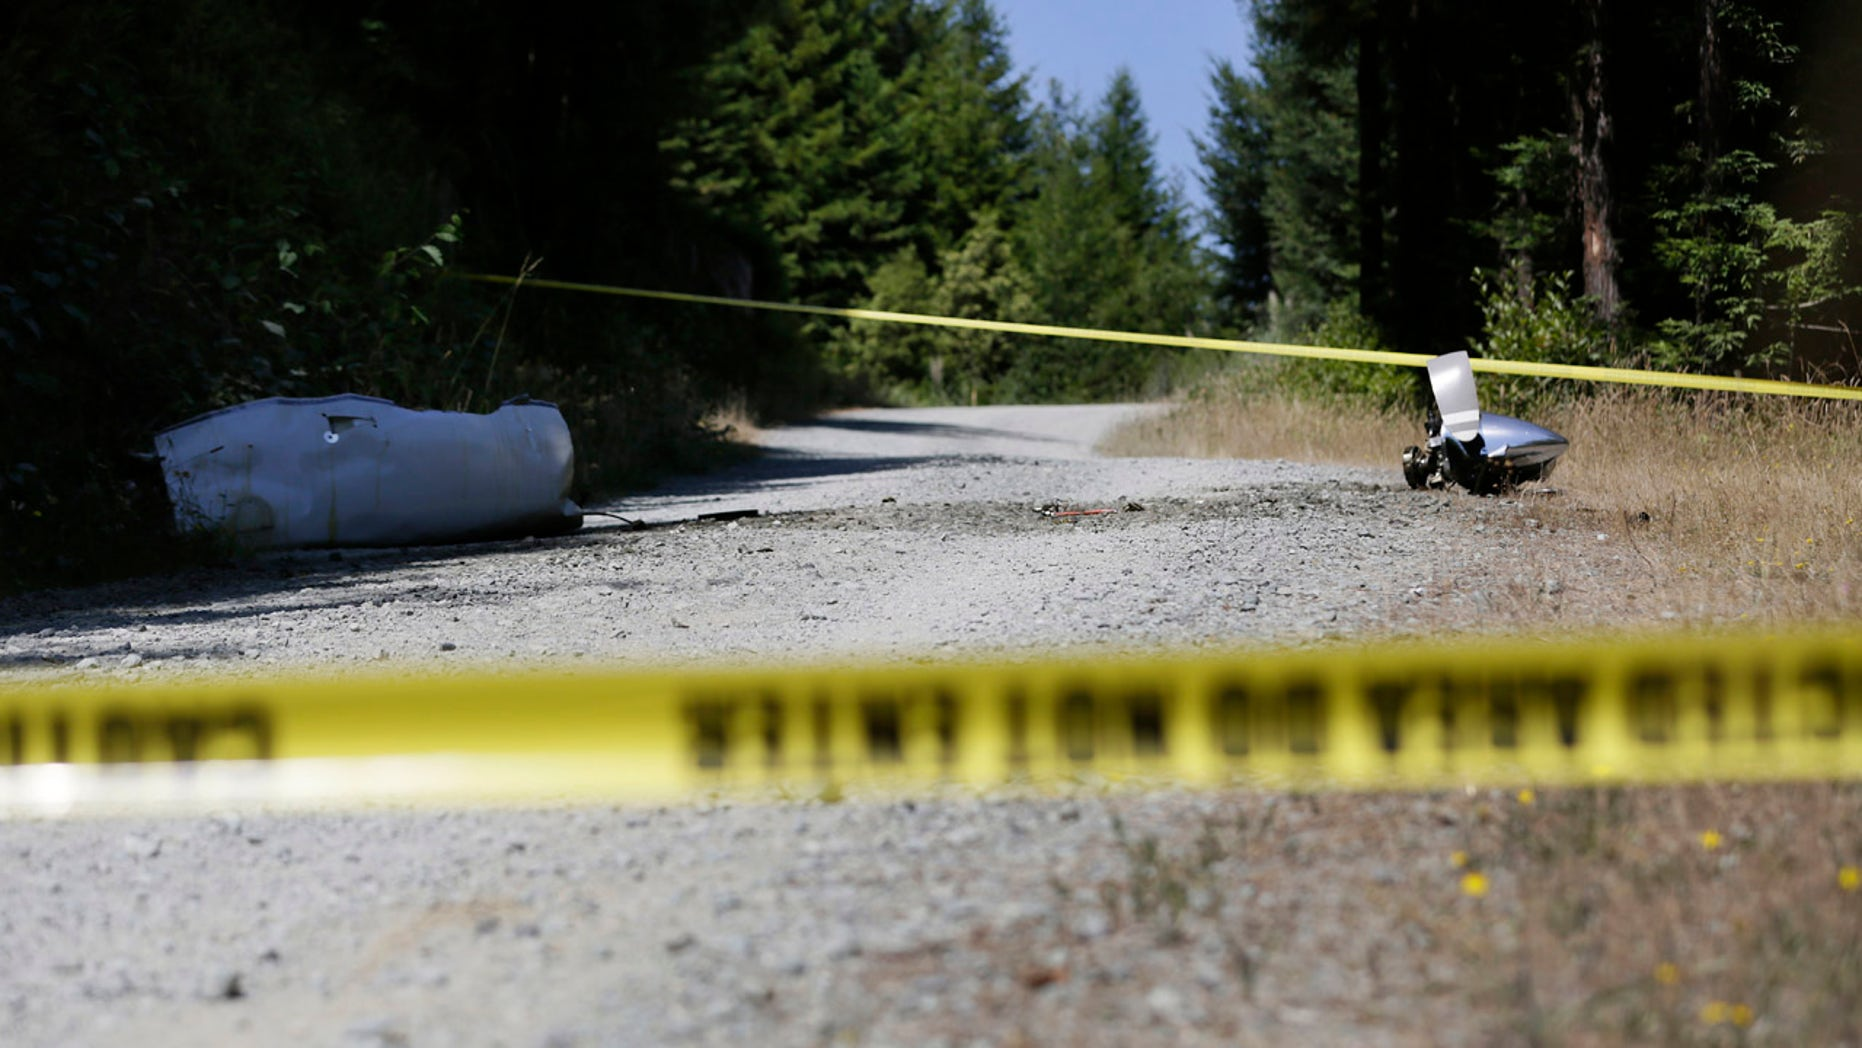 July 29, 2016: An engine nose cone with a bent propeller blade and other wreckage from a medical transport plane that crashed are shown on a road east of Crannell, Calif.